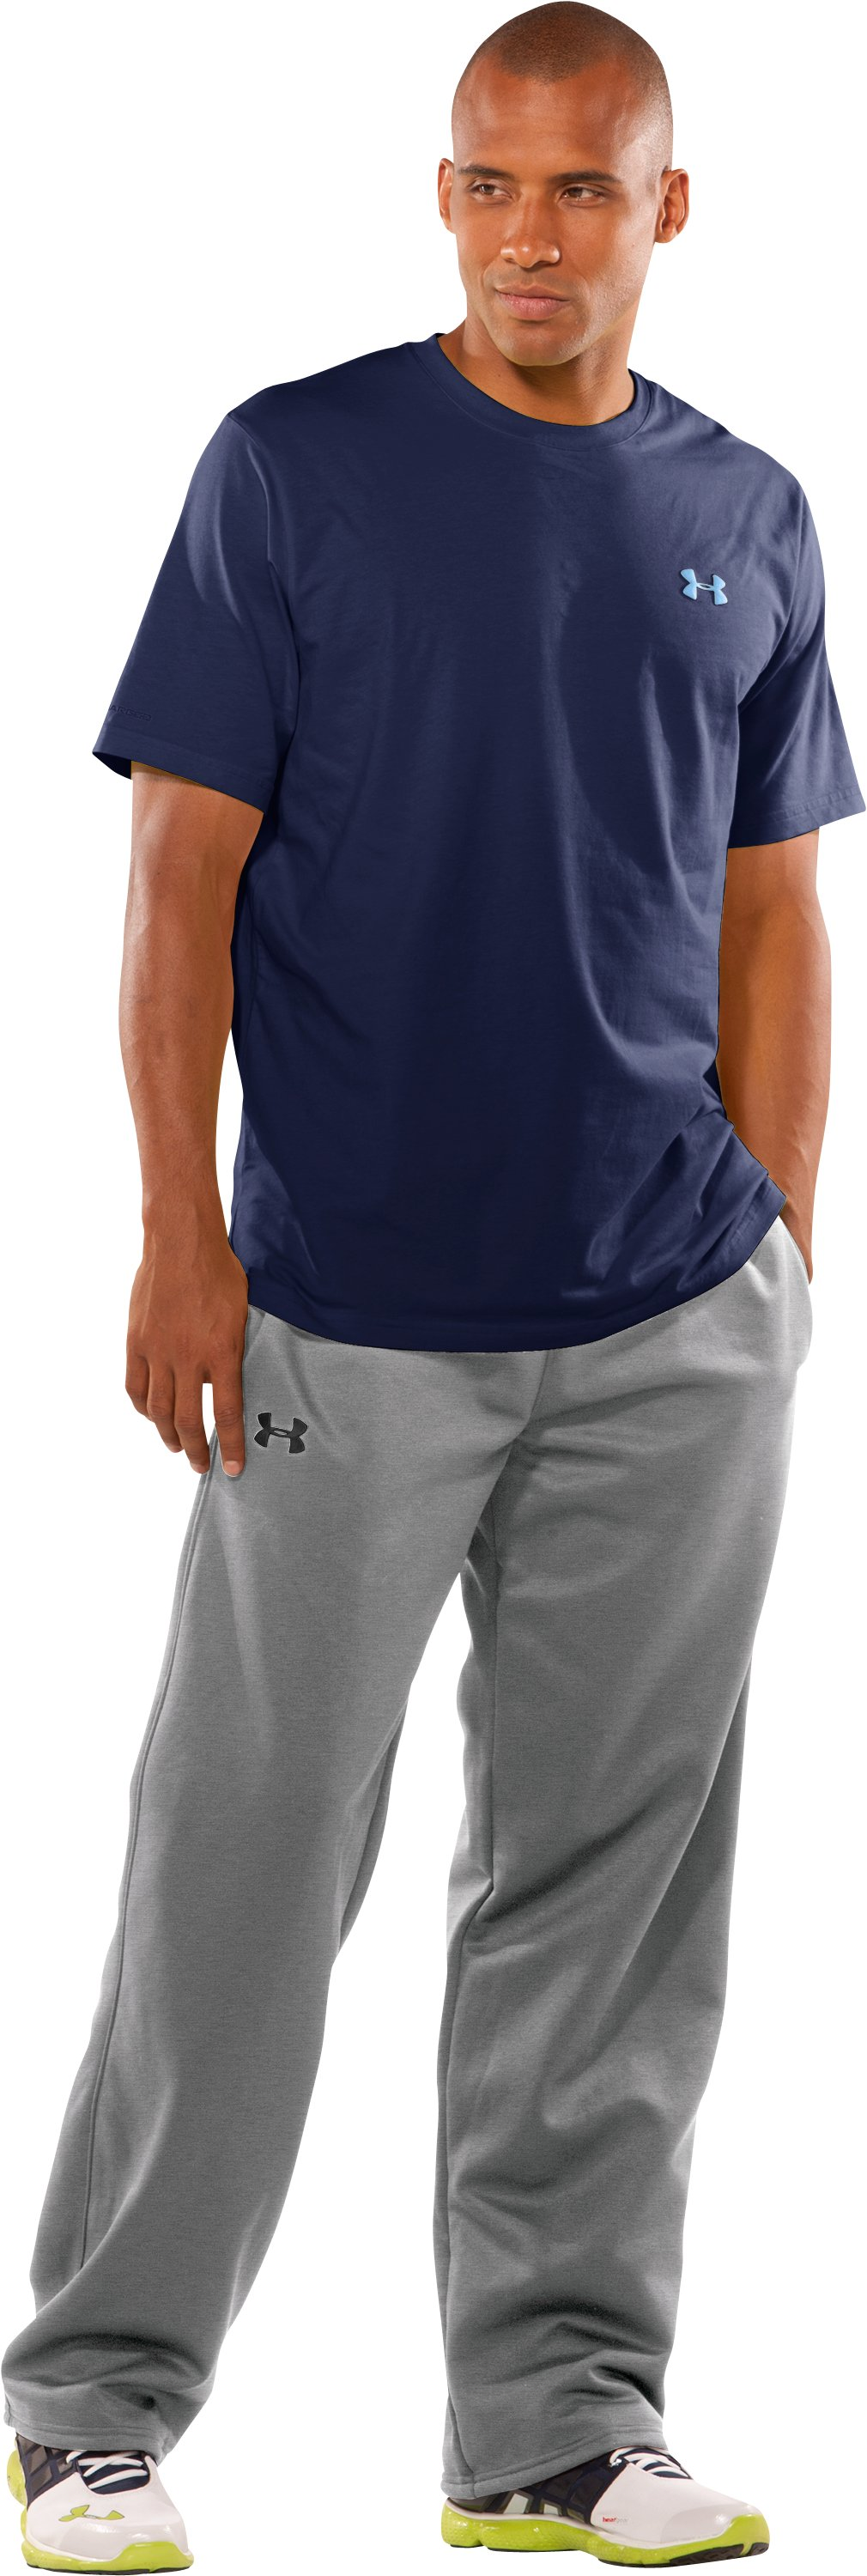 Men's Armour® Fleece Performance Pants Tall, True Gray Heather, zoomed image